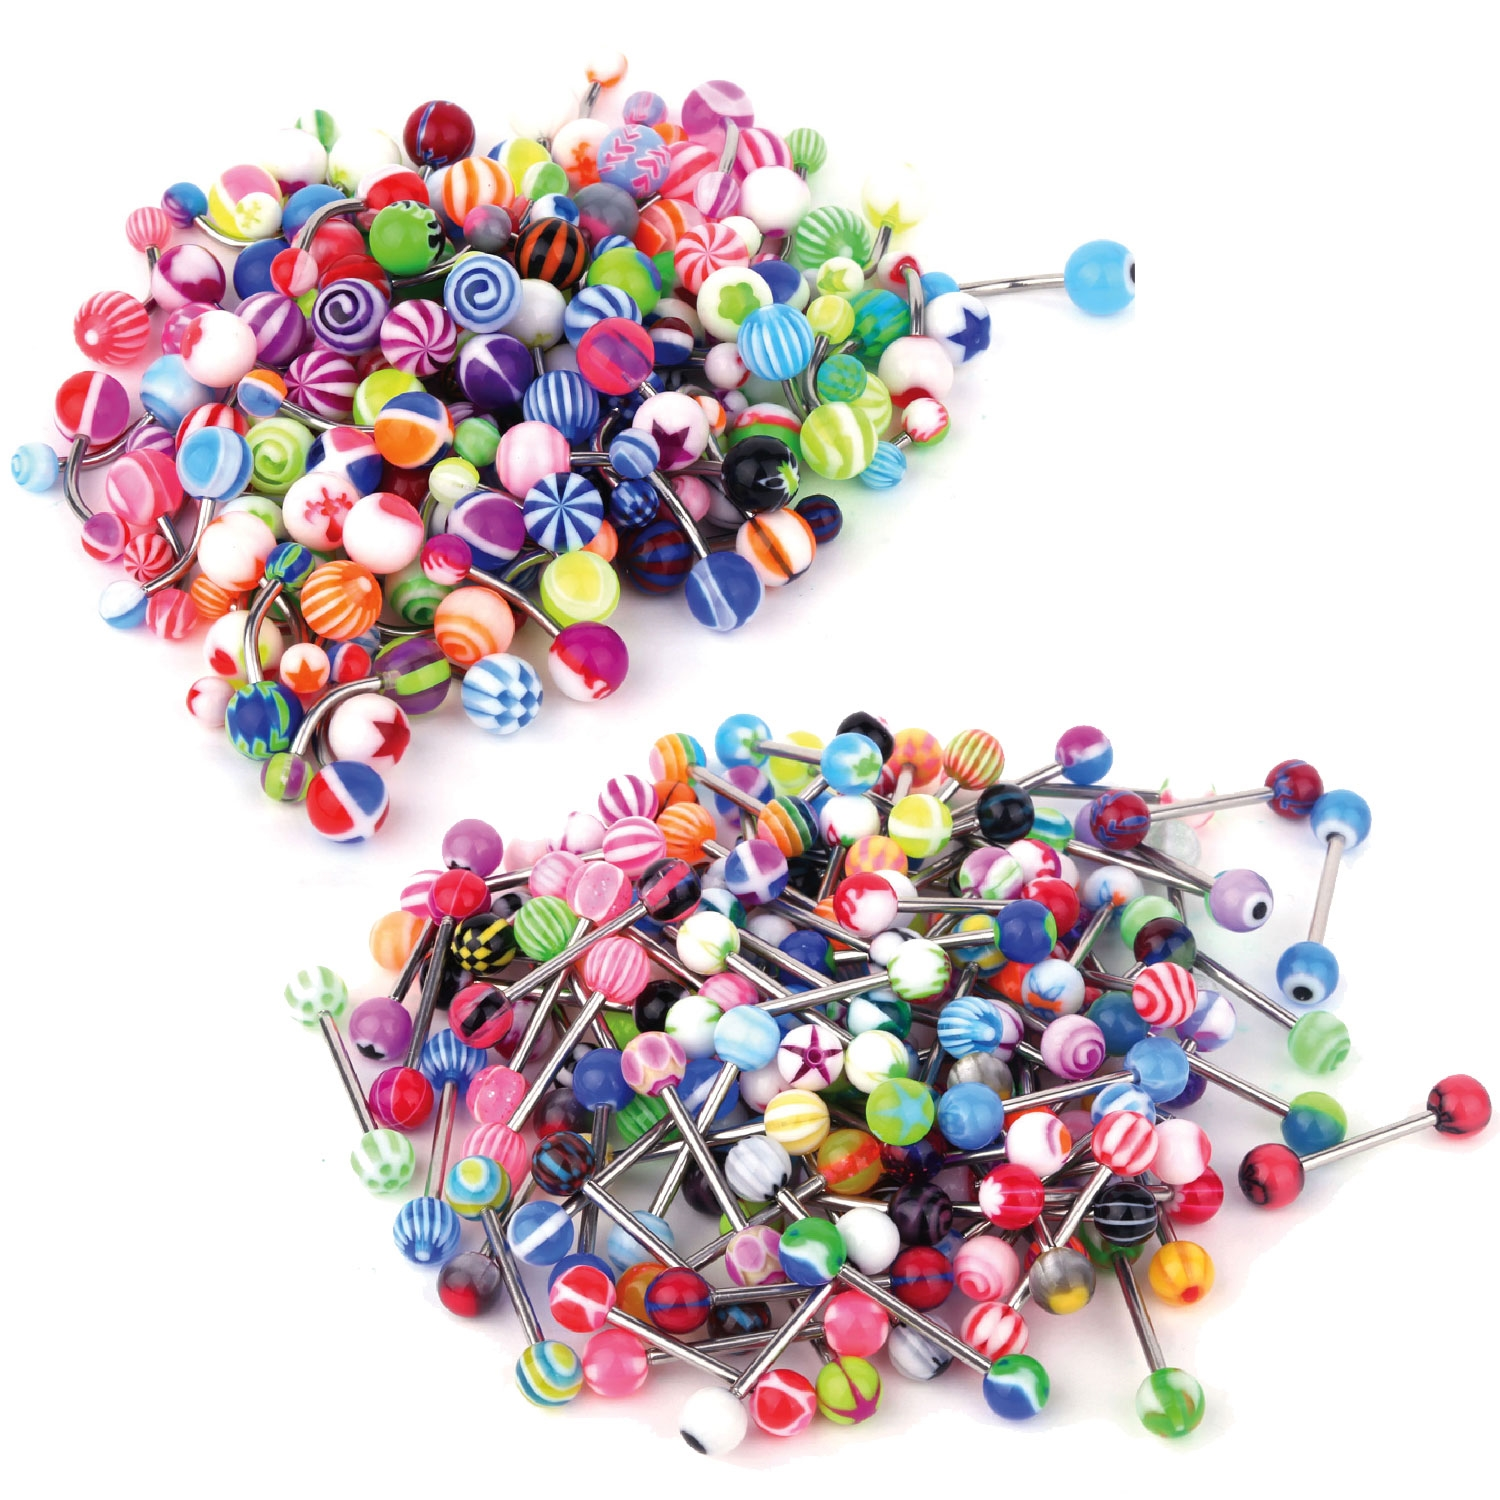 BodyJ4You 100PC Tongue Barbells Belly Rings Steel Bar Steel 14G Acrylic Balls Body Piercing Jewelry